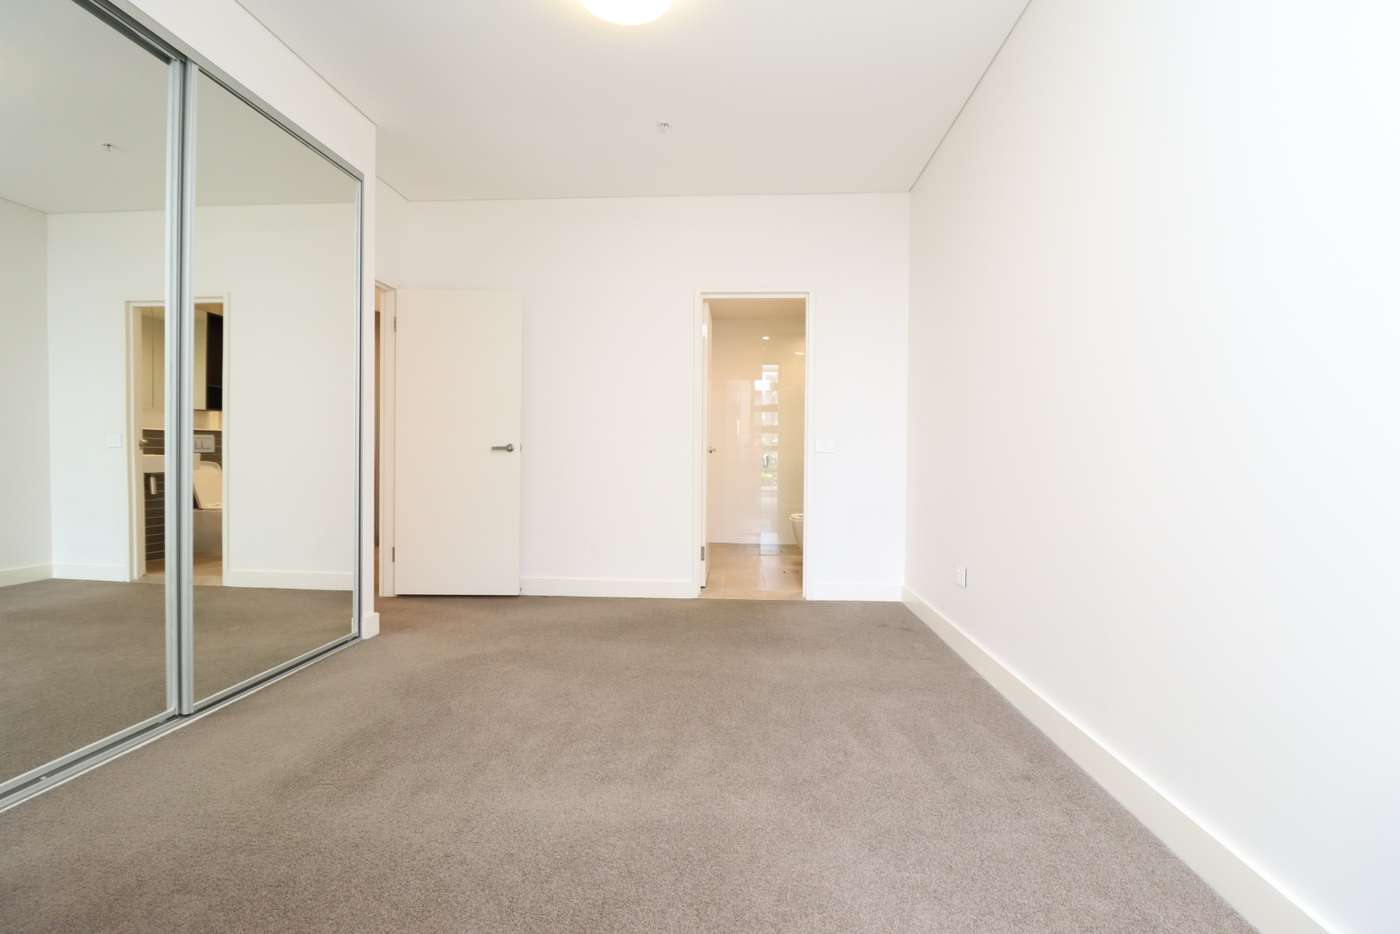 Sixth view of Homely apartment listing, 410/13 Verona Dr, Wentworth Point NSW 2127